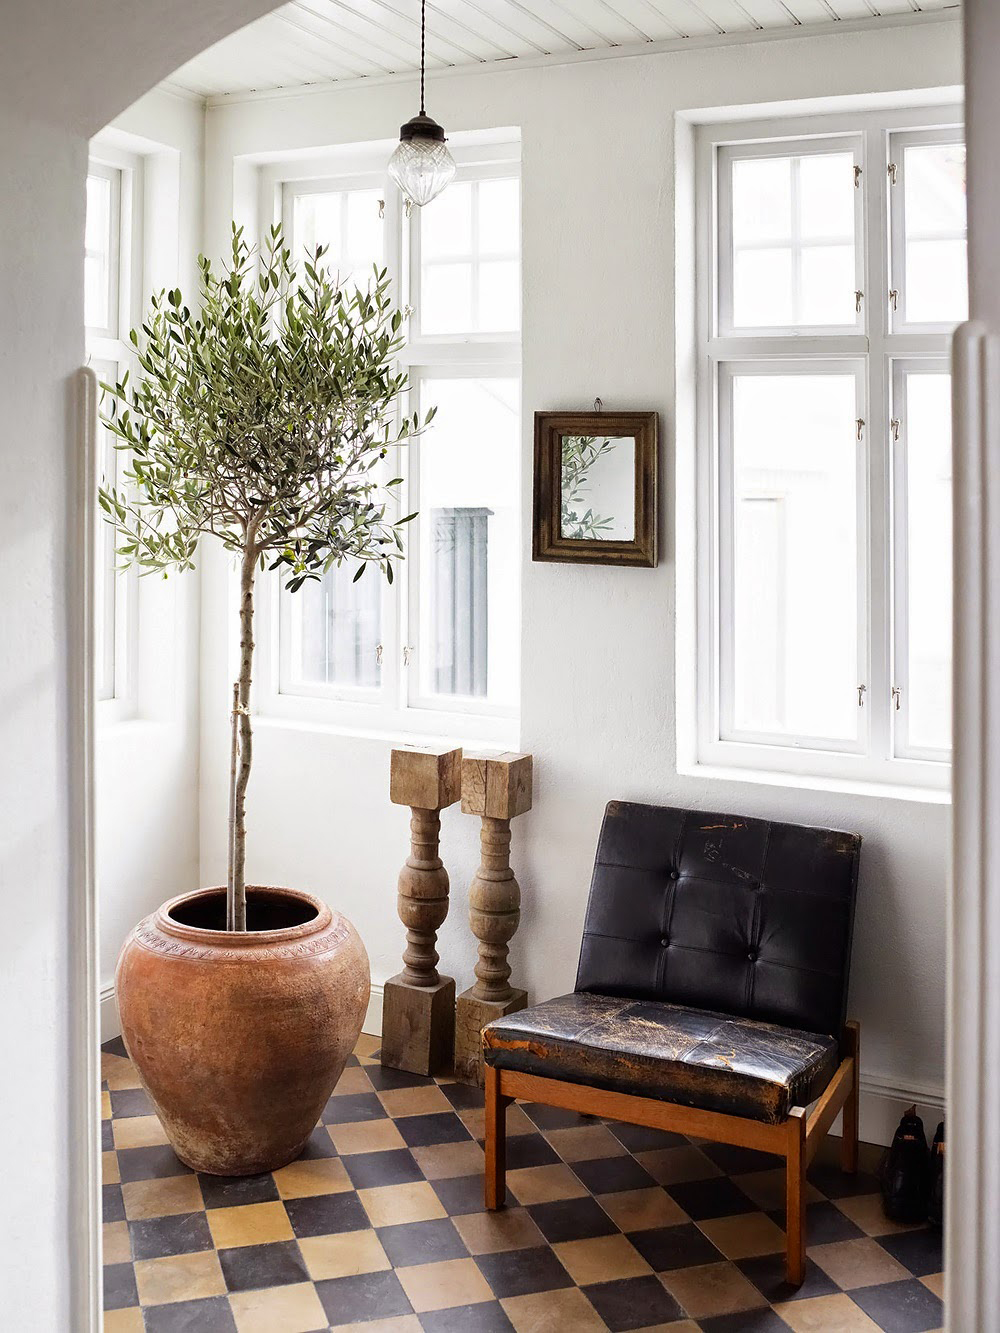 Mediterranean vibe brought in a home through an olive tree